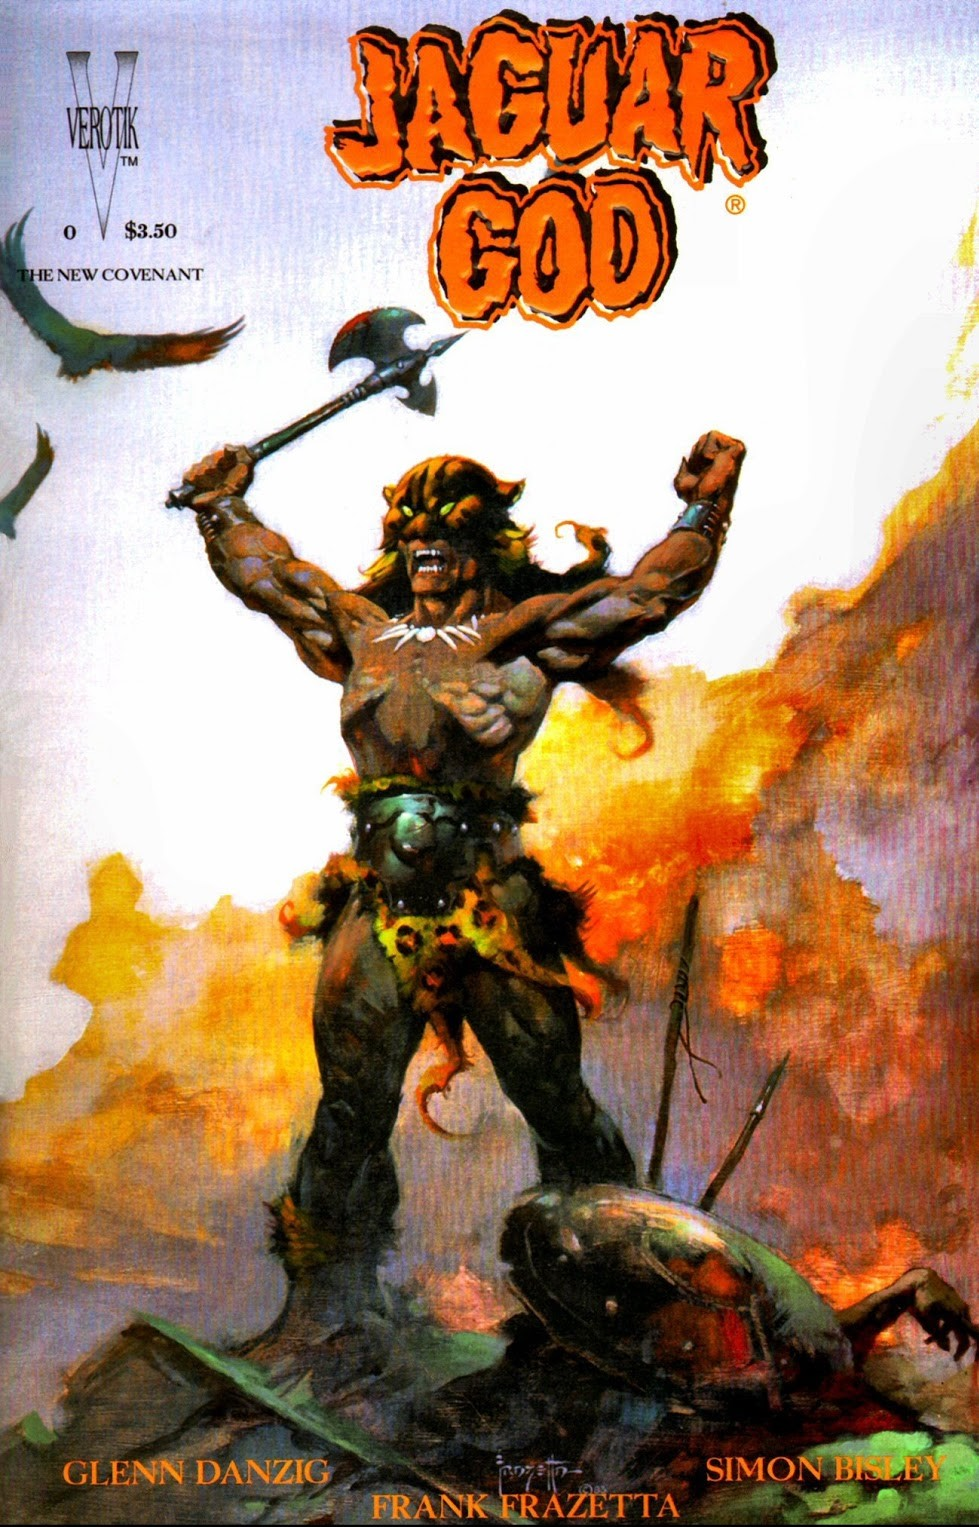 Jaguar God comic Planches Frazetta & Bisley